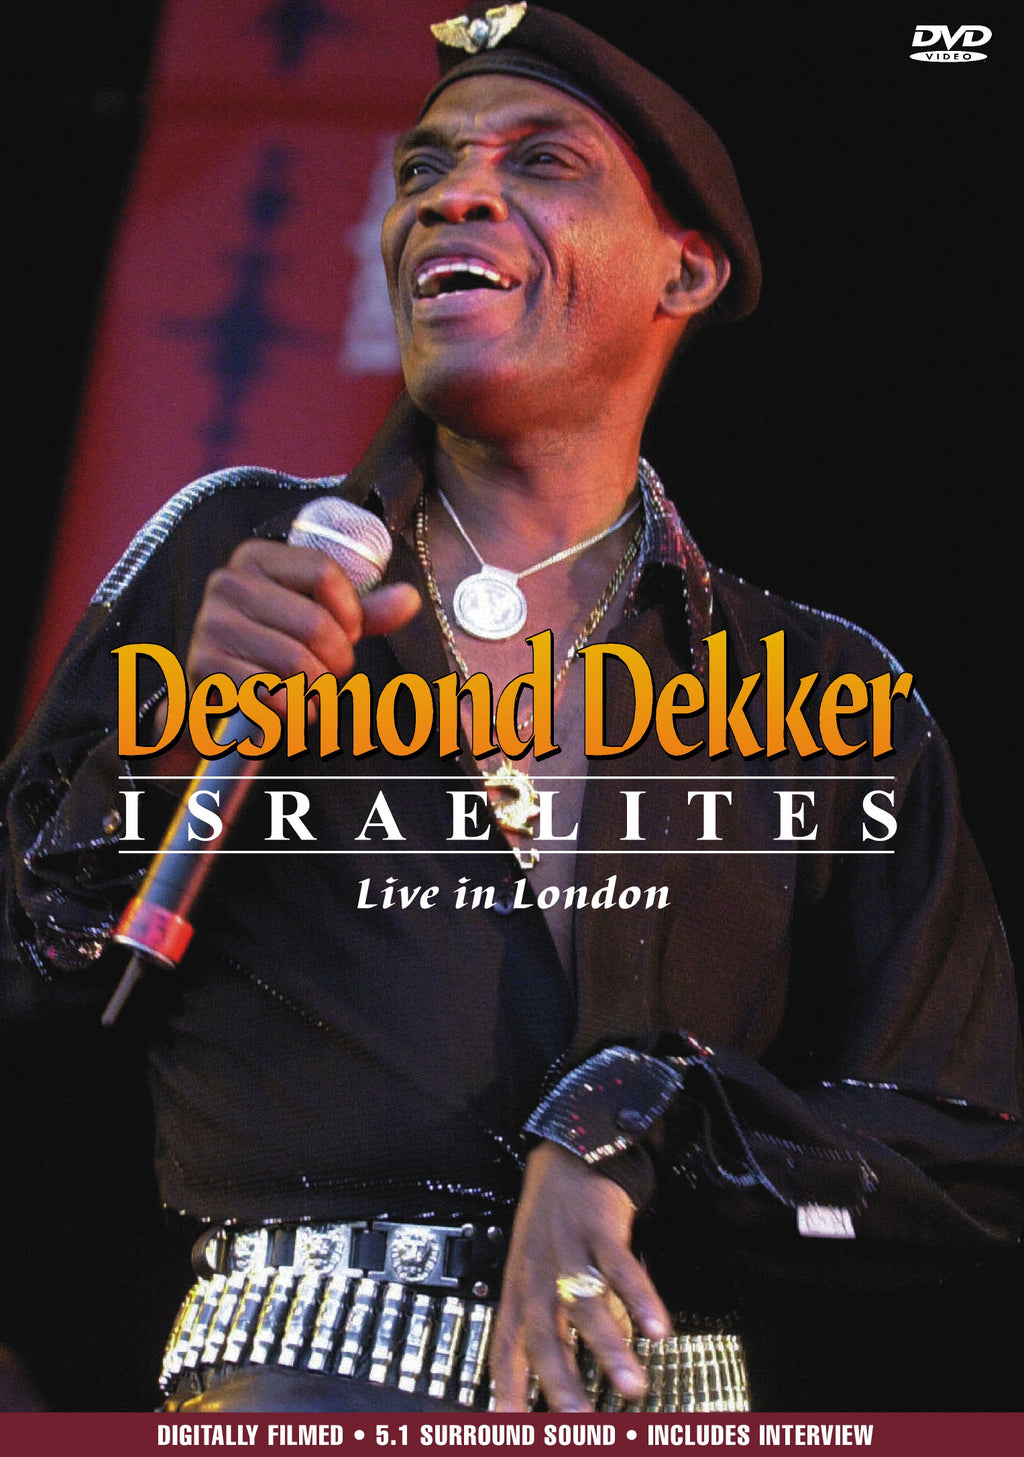 Desmond Dekker - Israelites Live In London - DVD - Secret Records Limited